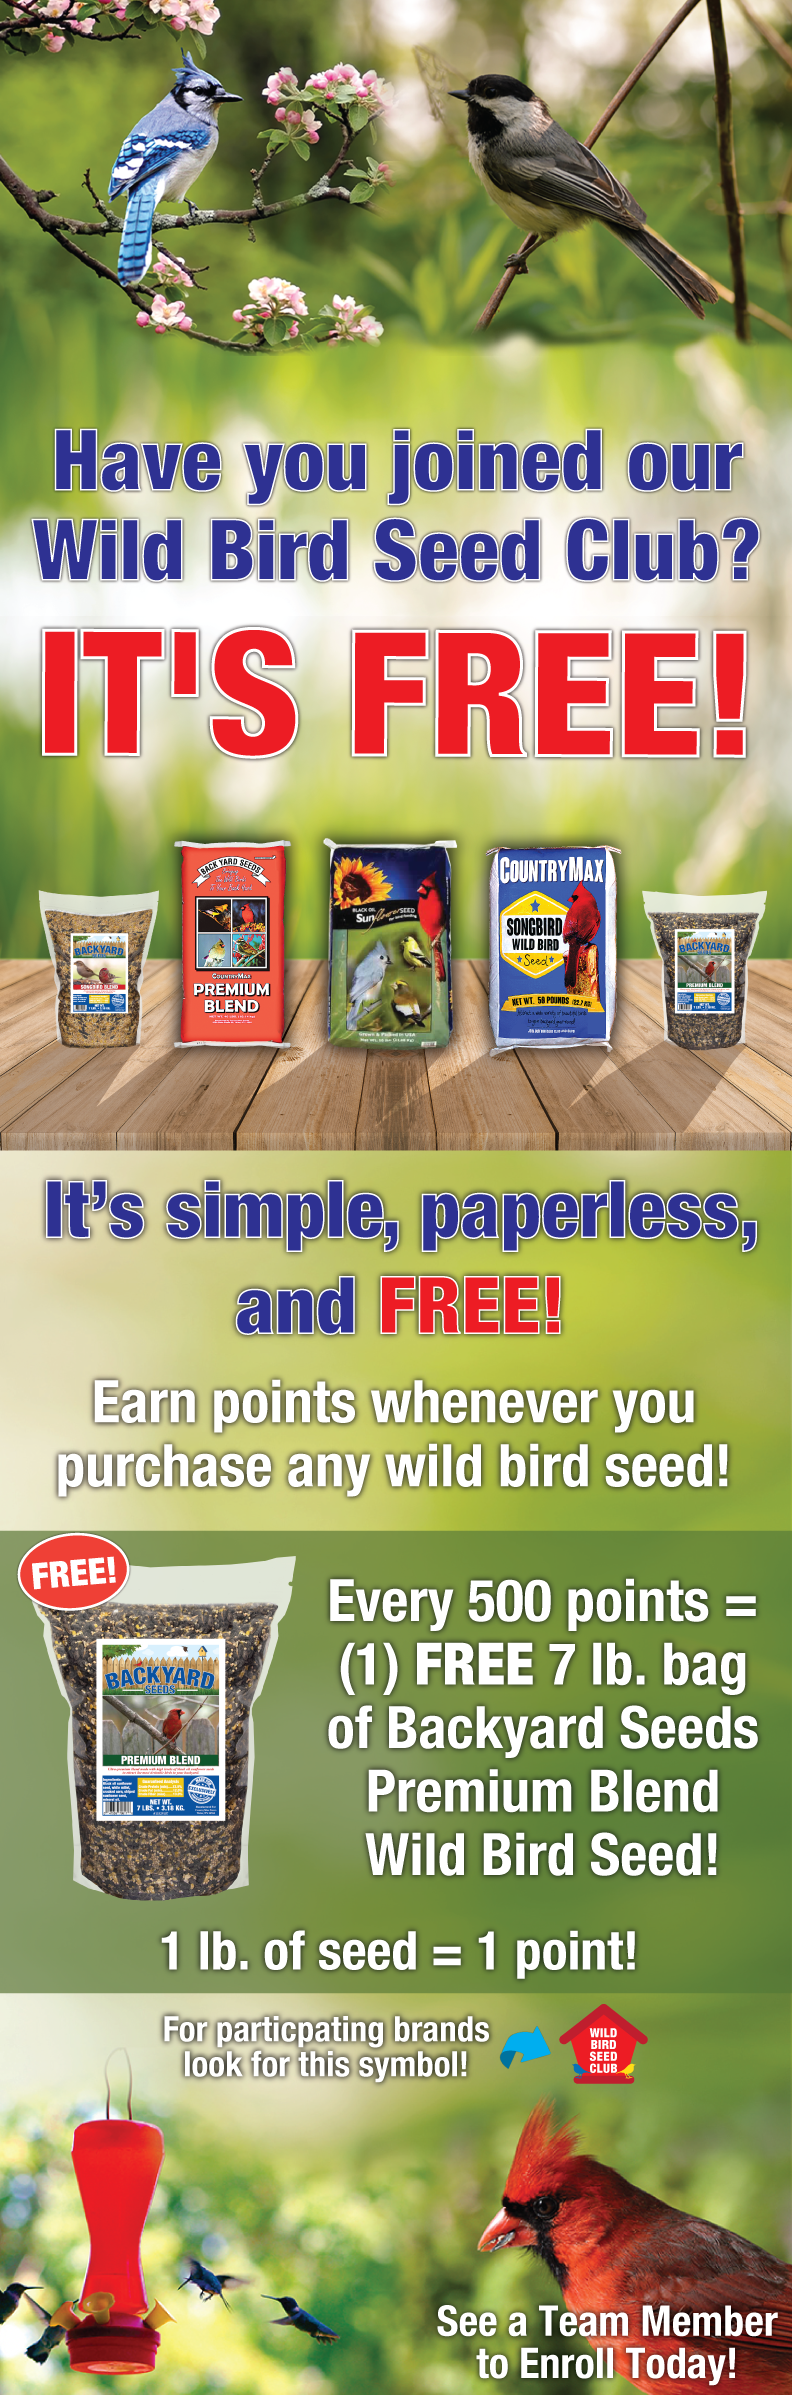 have-you-joined-wild-bird-seed-club-sign-4.png